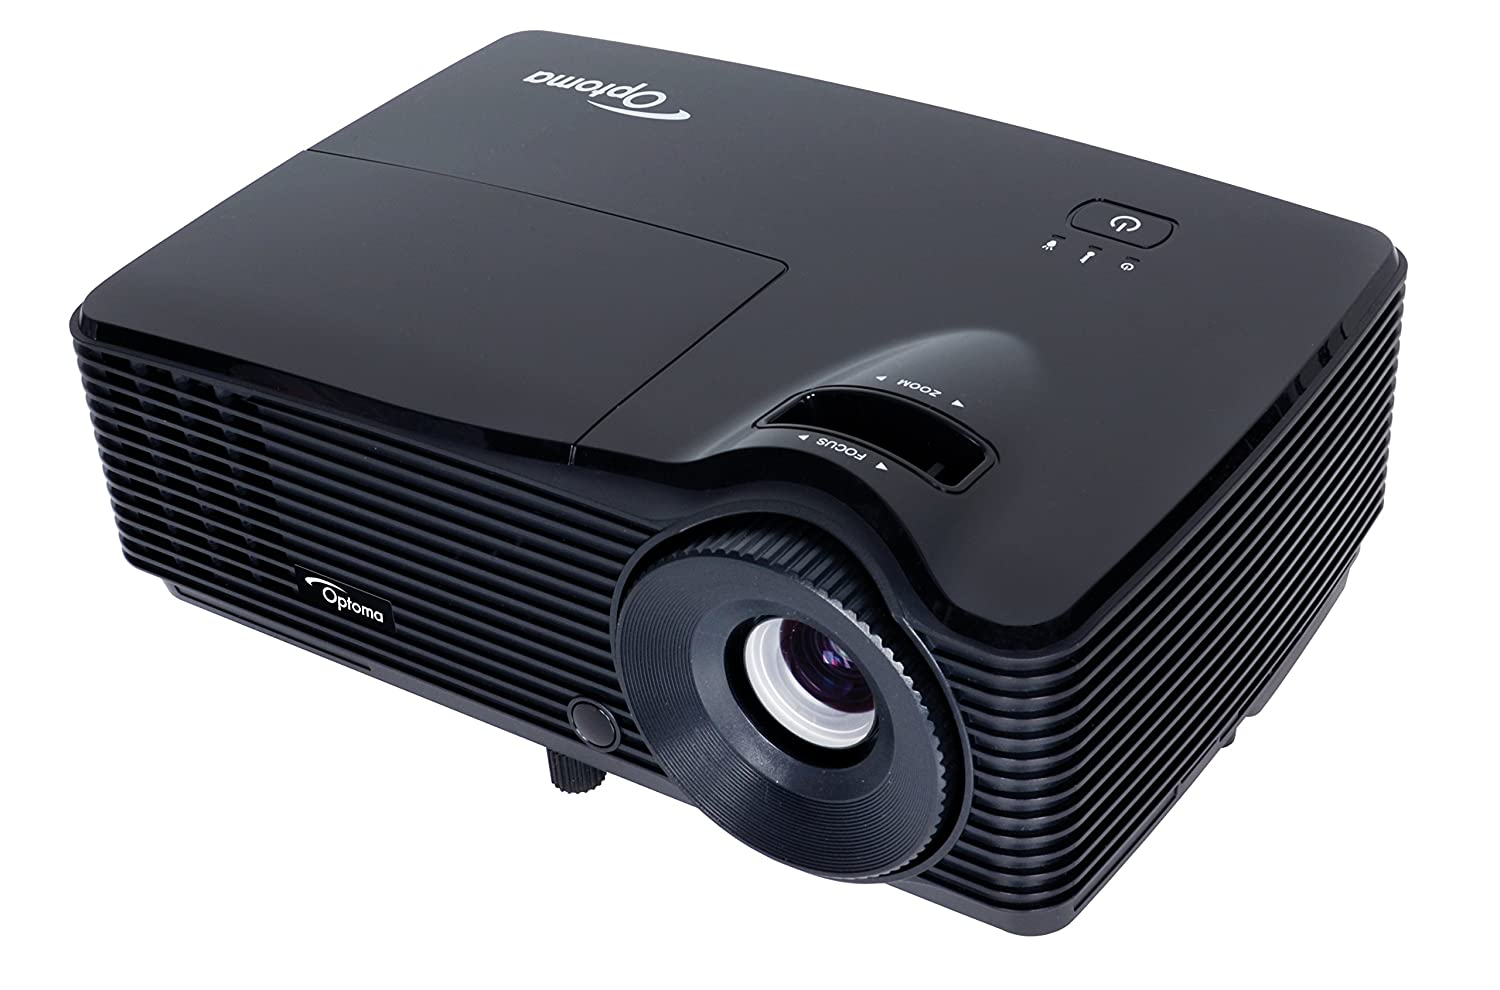 Optoma W311 Full 3D WXGA 3200 Lumen DLP Multimedia Projector with 2 HDMI Ports